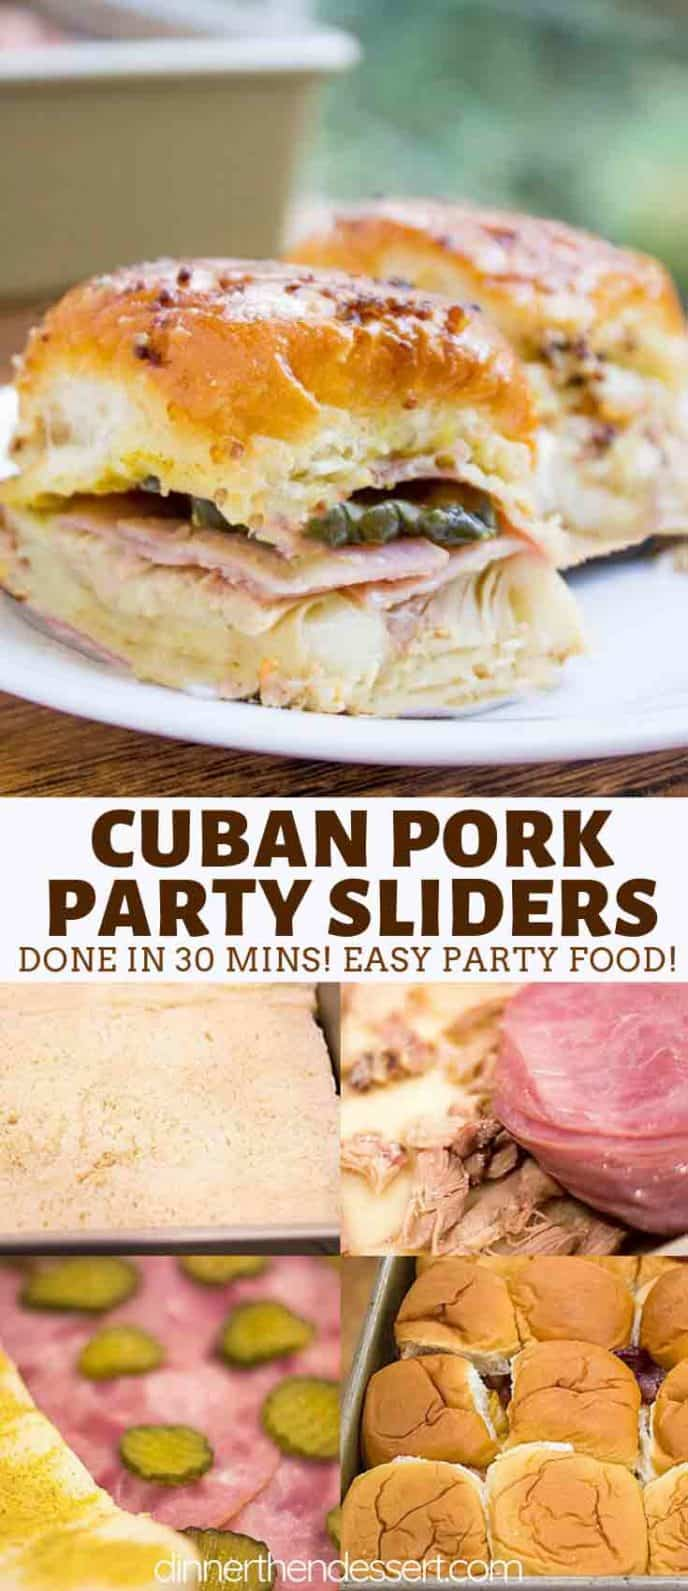 Cuban Pork Party Sliders